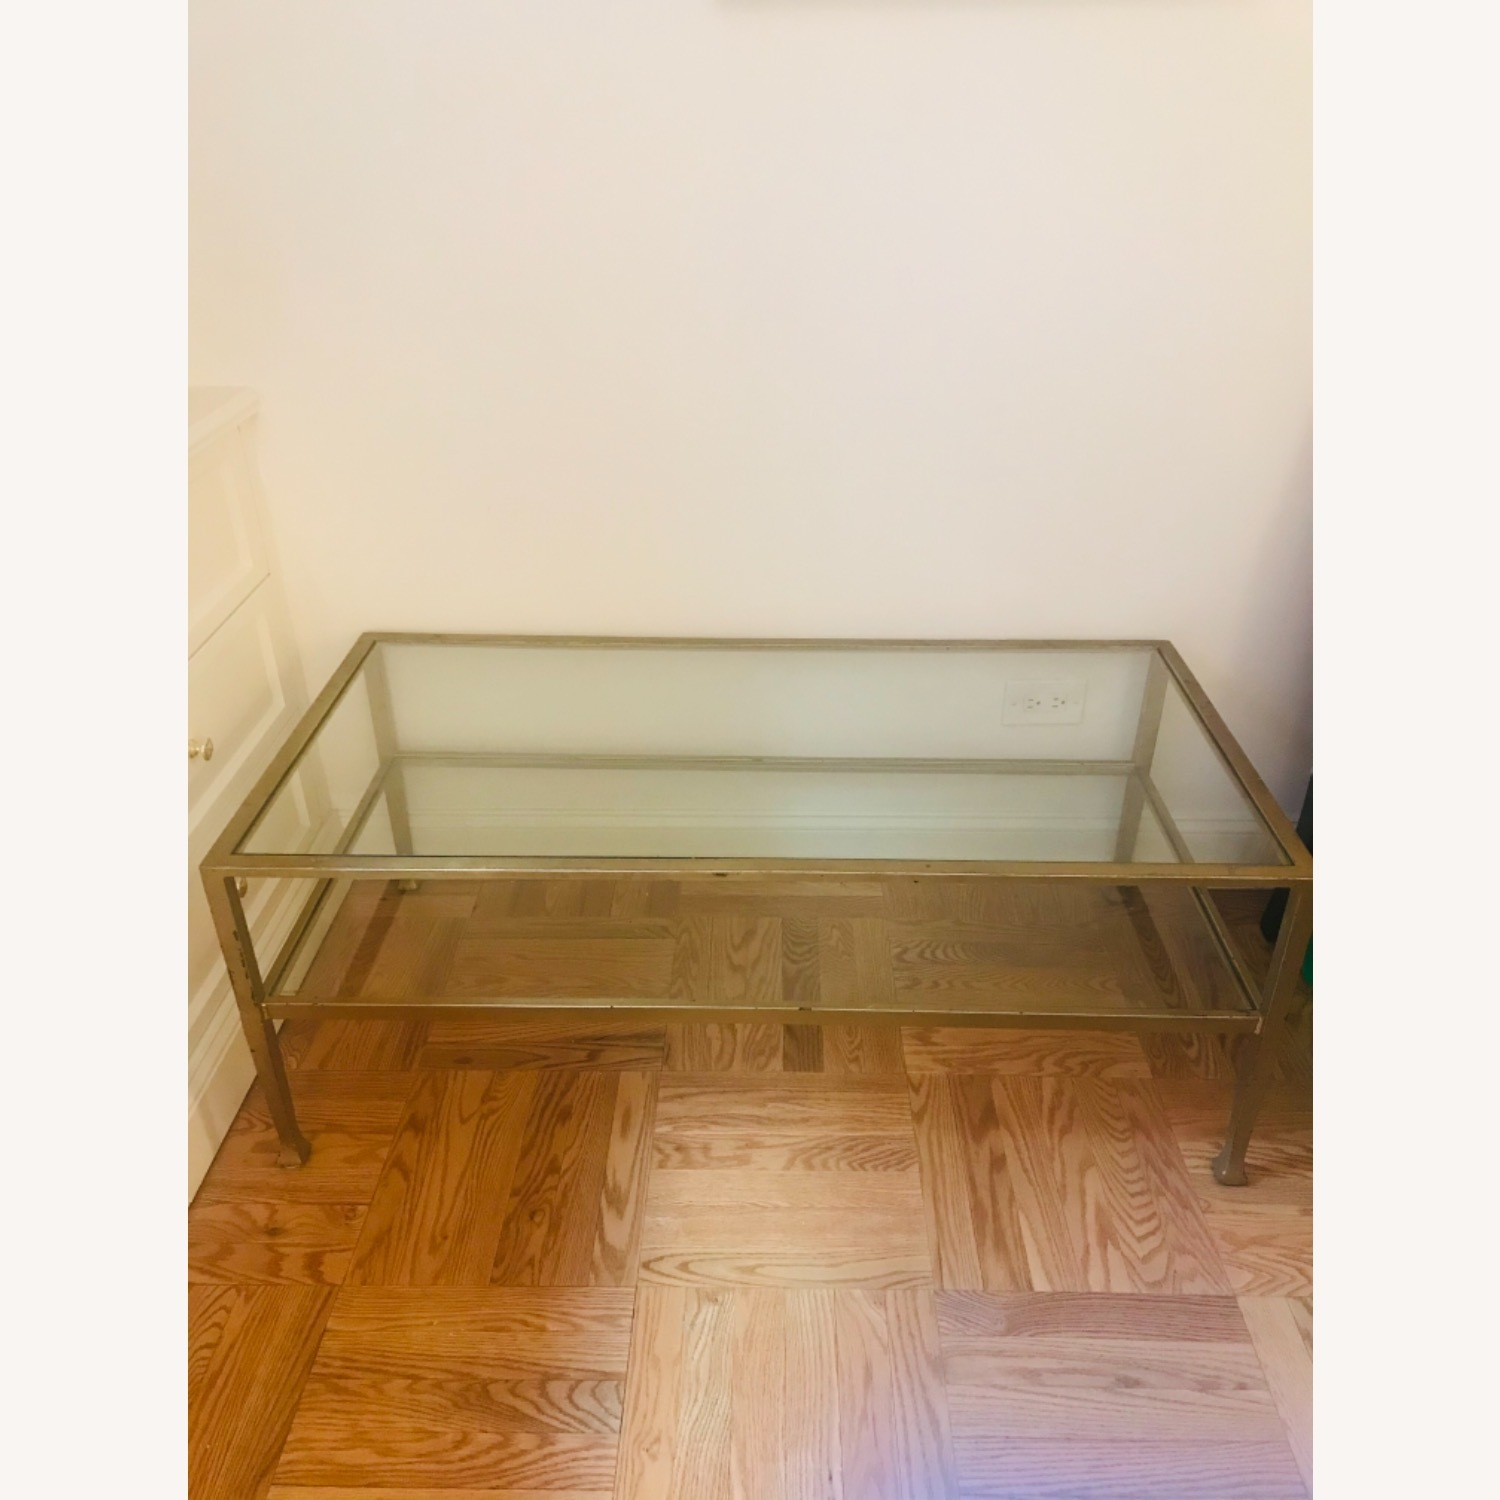 Crate & Barrel Antique Gold Glass and Metal Table - image-1